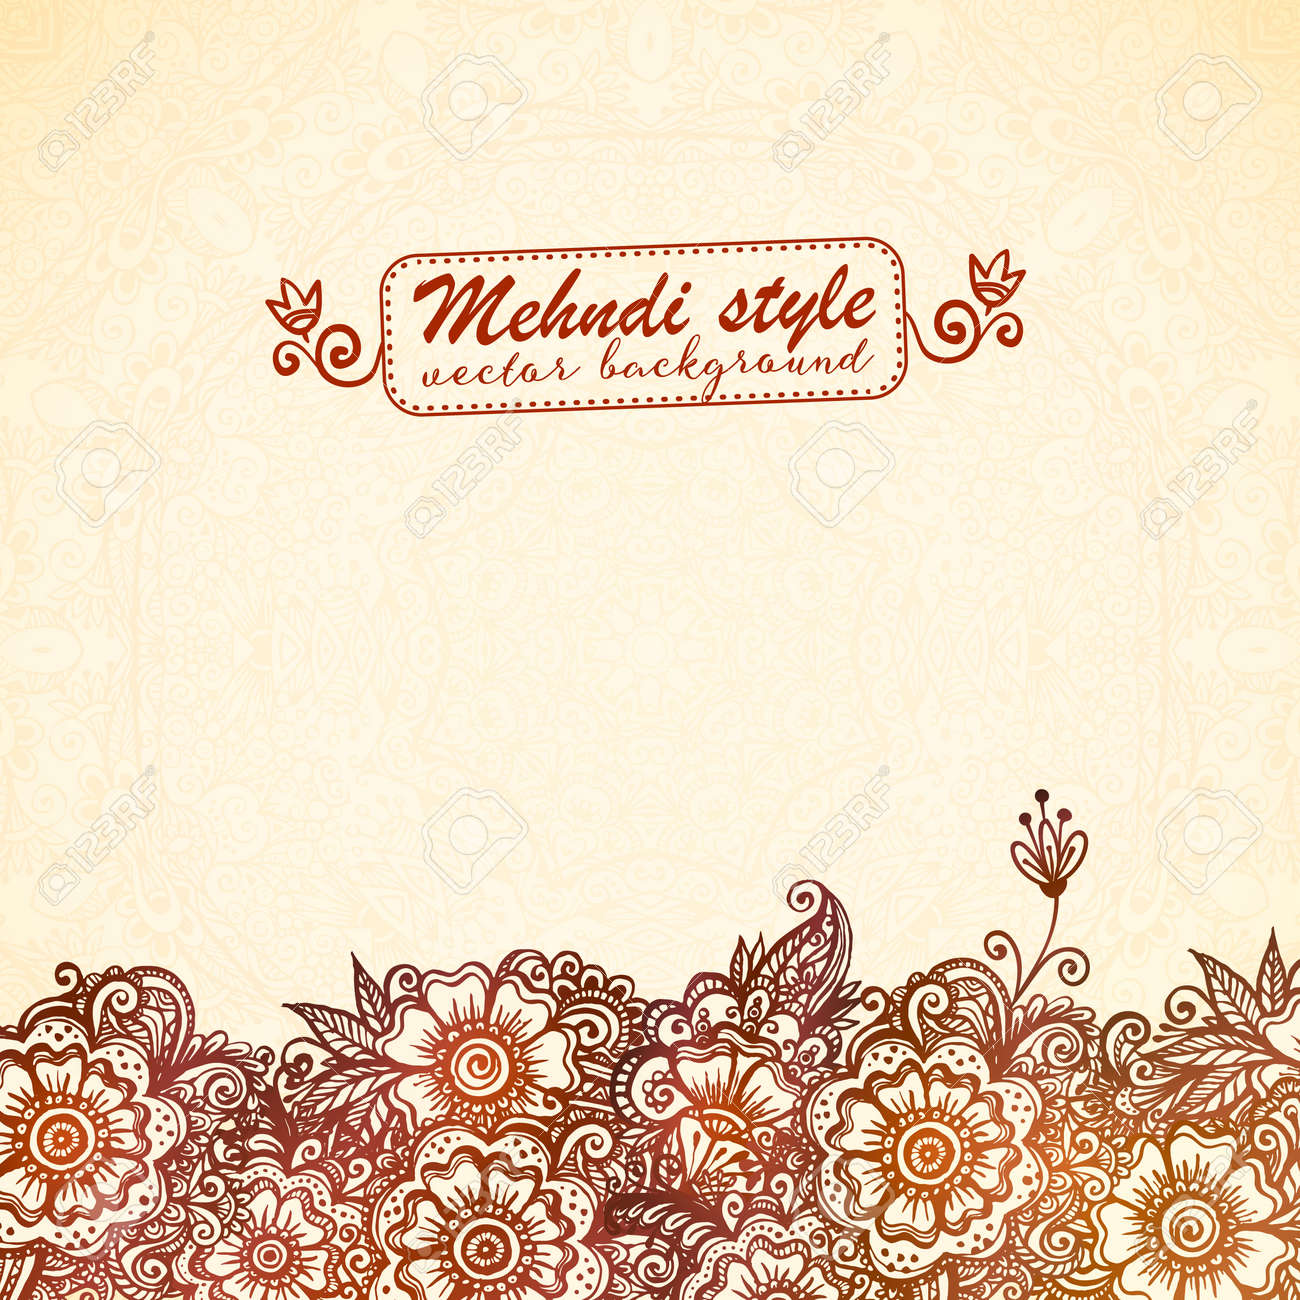 Ornate vintage vector background in mehndi style royalty free stock - Vintage Background In Indian Henna Mehndi Style Stock Vector 40974568